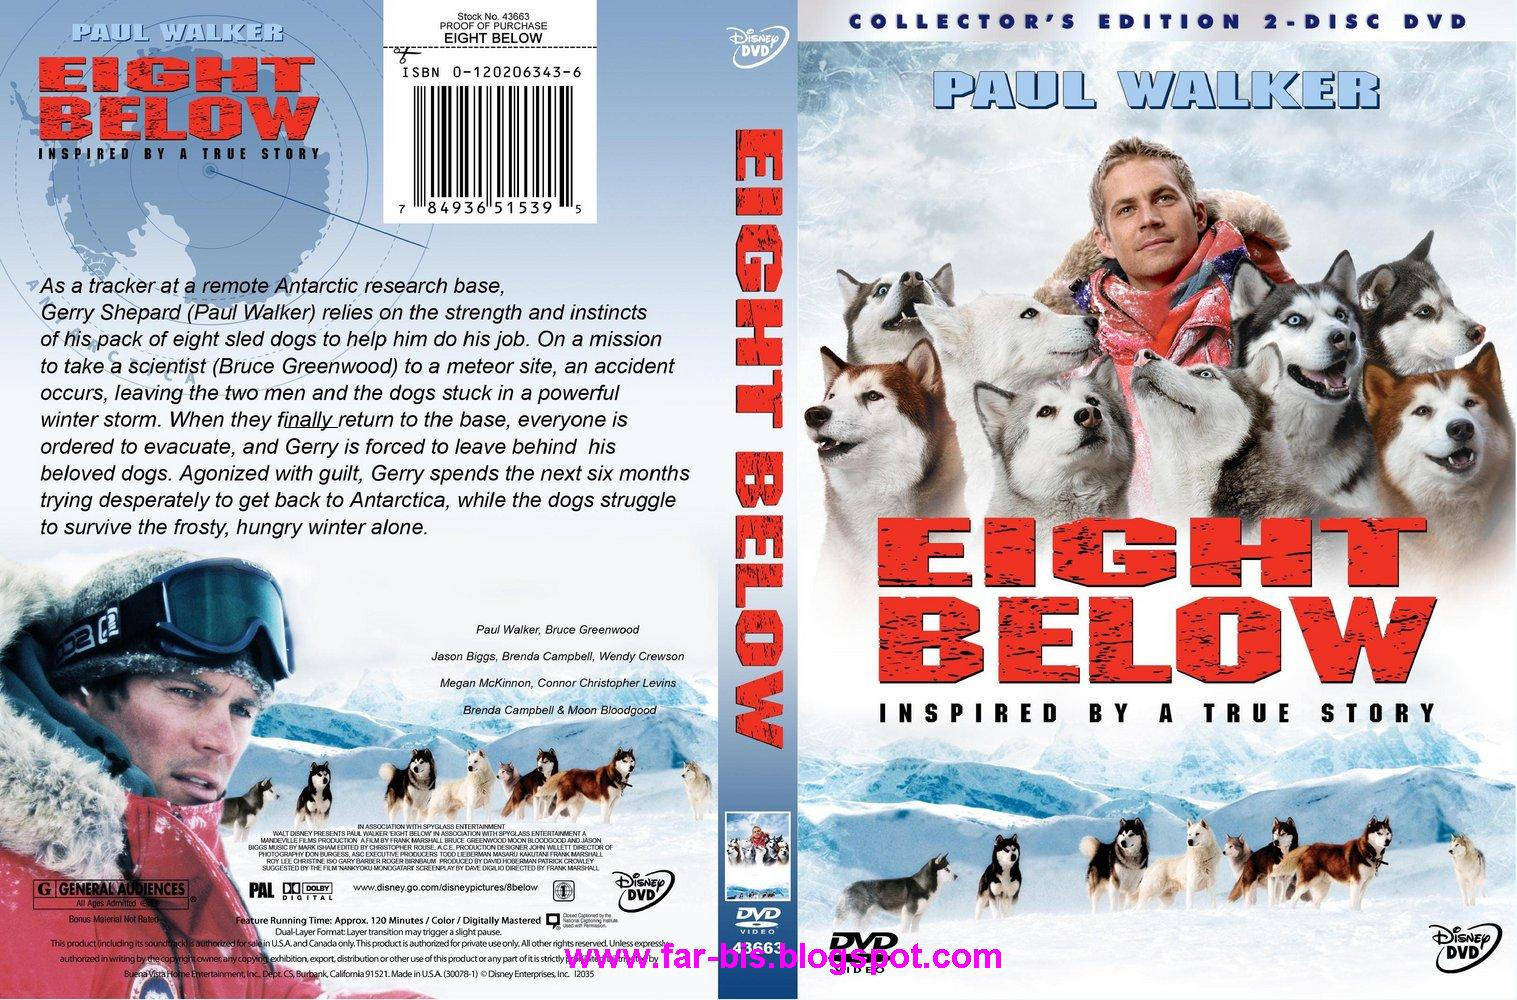 the pet full movie download 2006